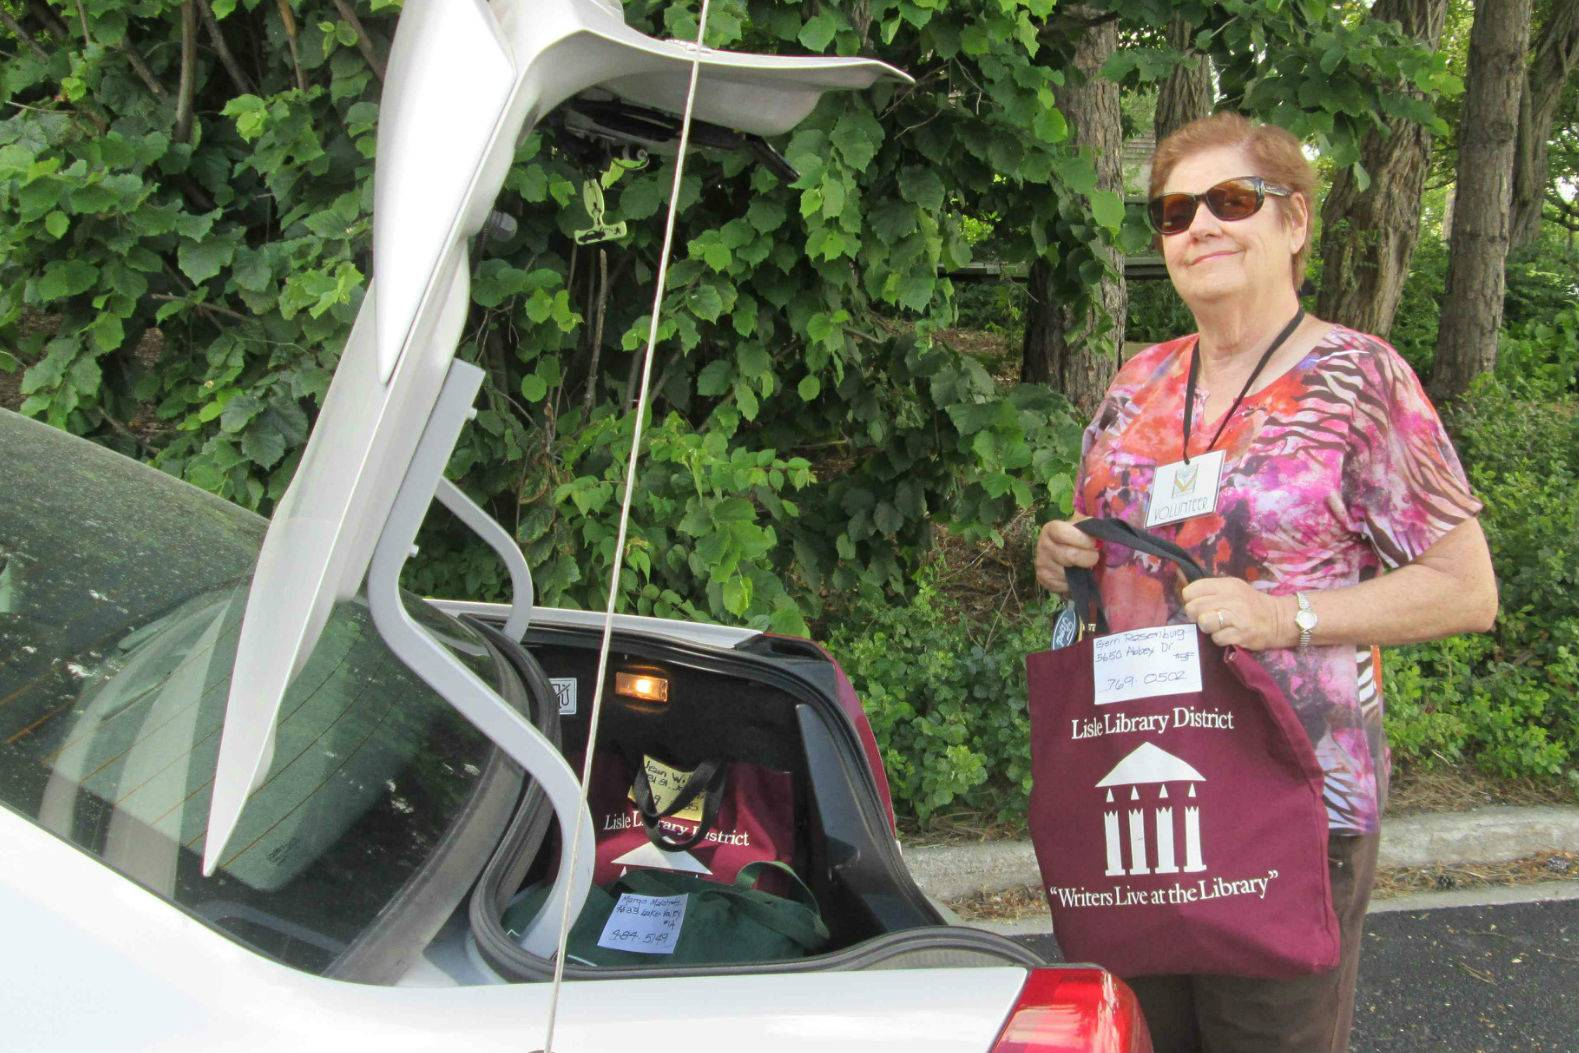 Longtime library volunteer, Kathy Schwandt, loads her car with materials for patrons who use Lisle Library's home delivery service. For more information, visit lislelibrary.org.Nicole Mueller